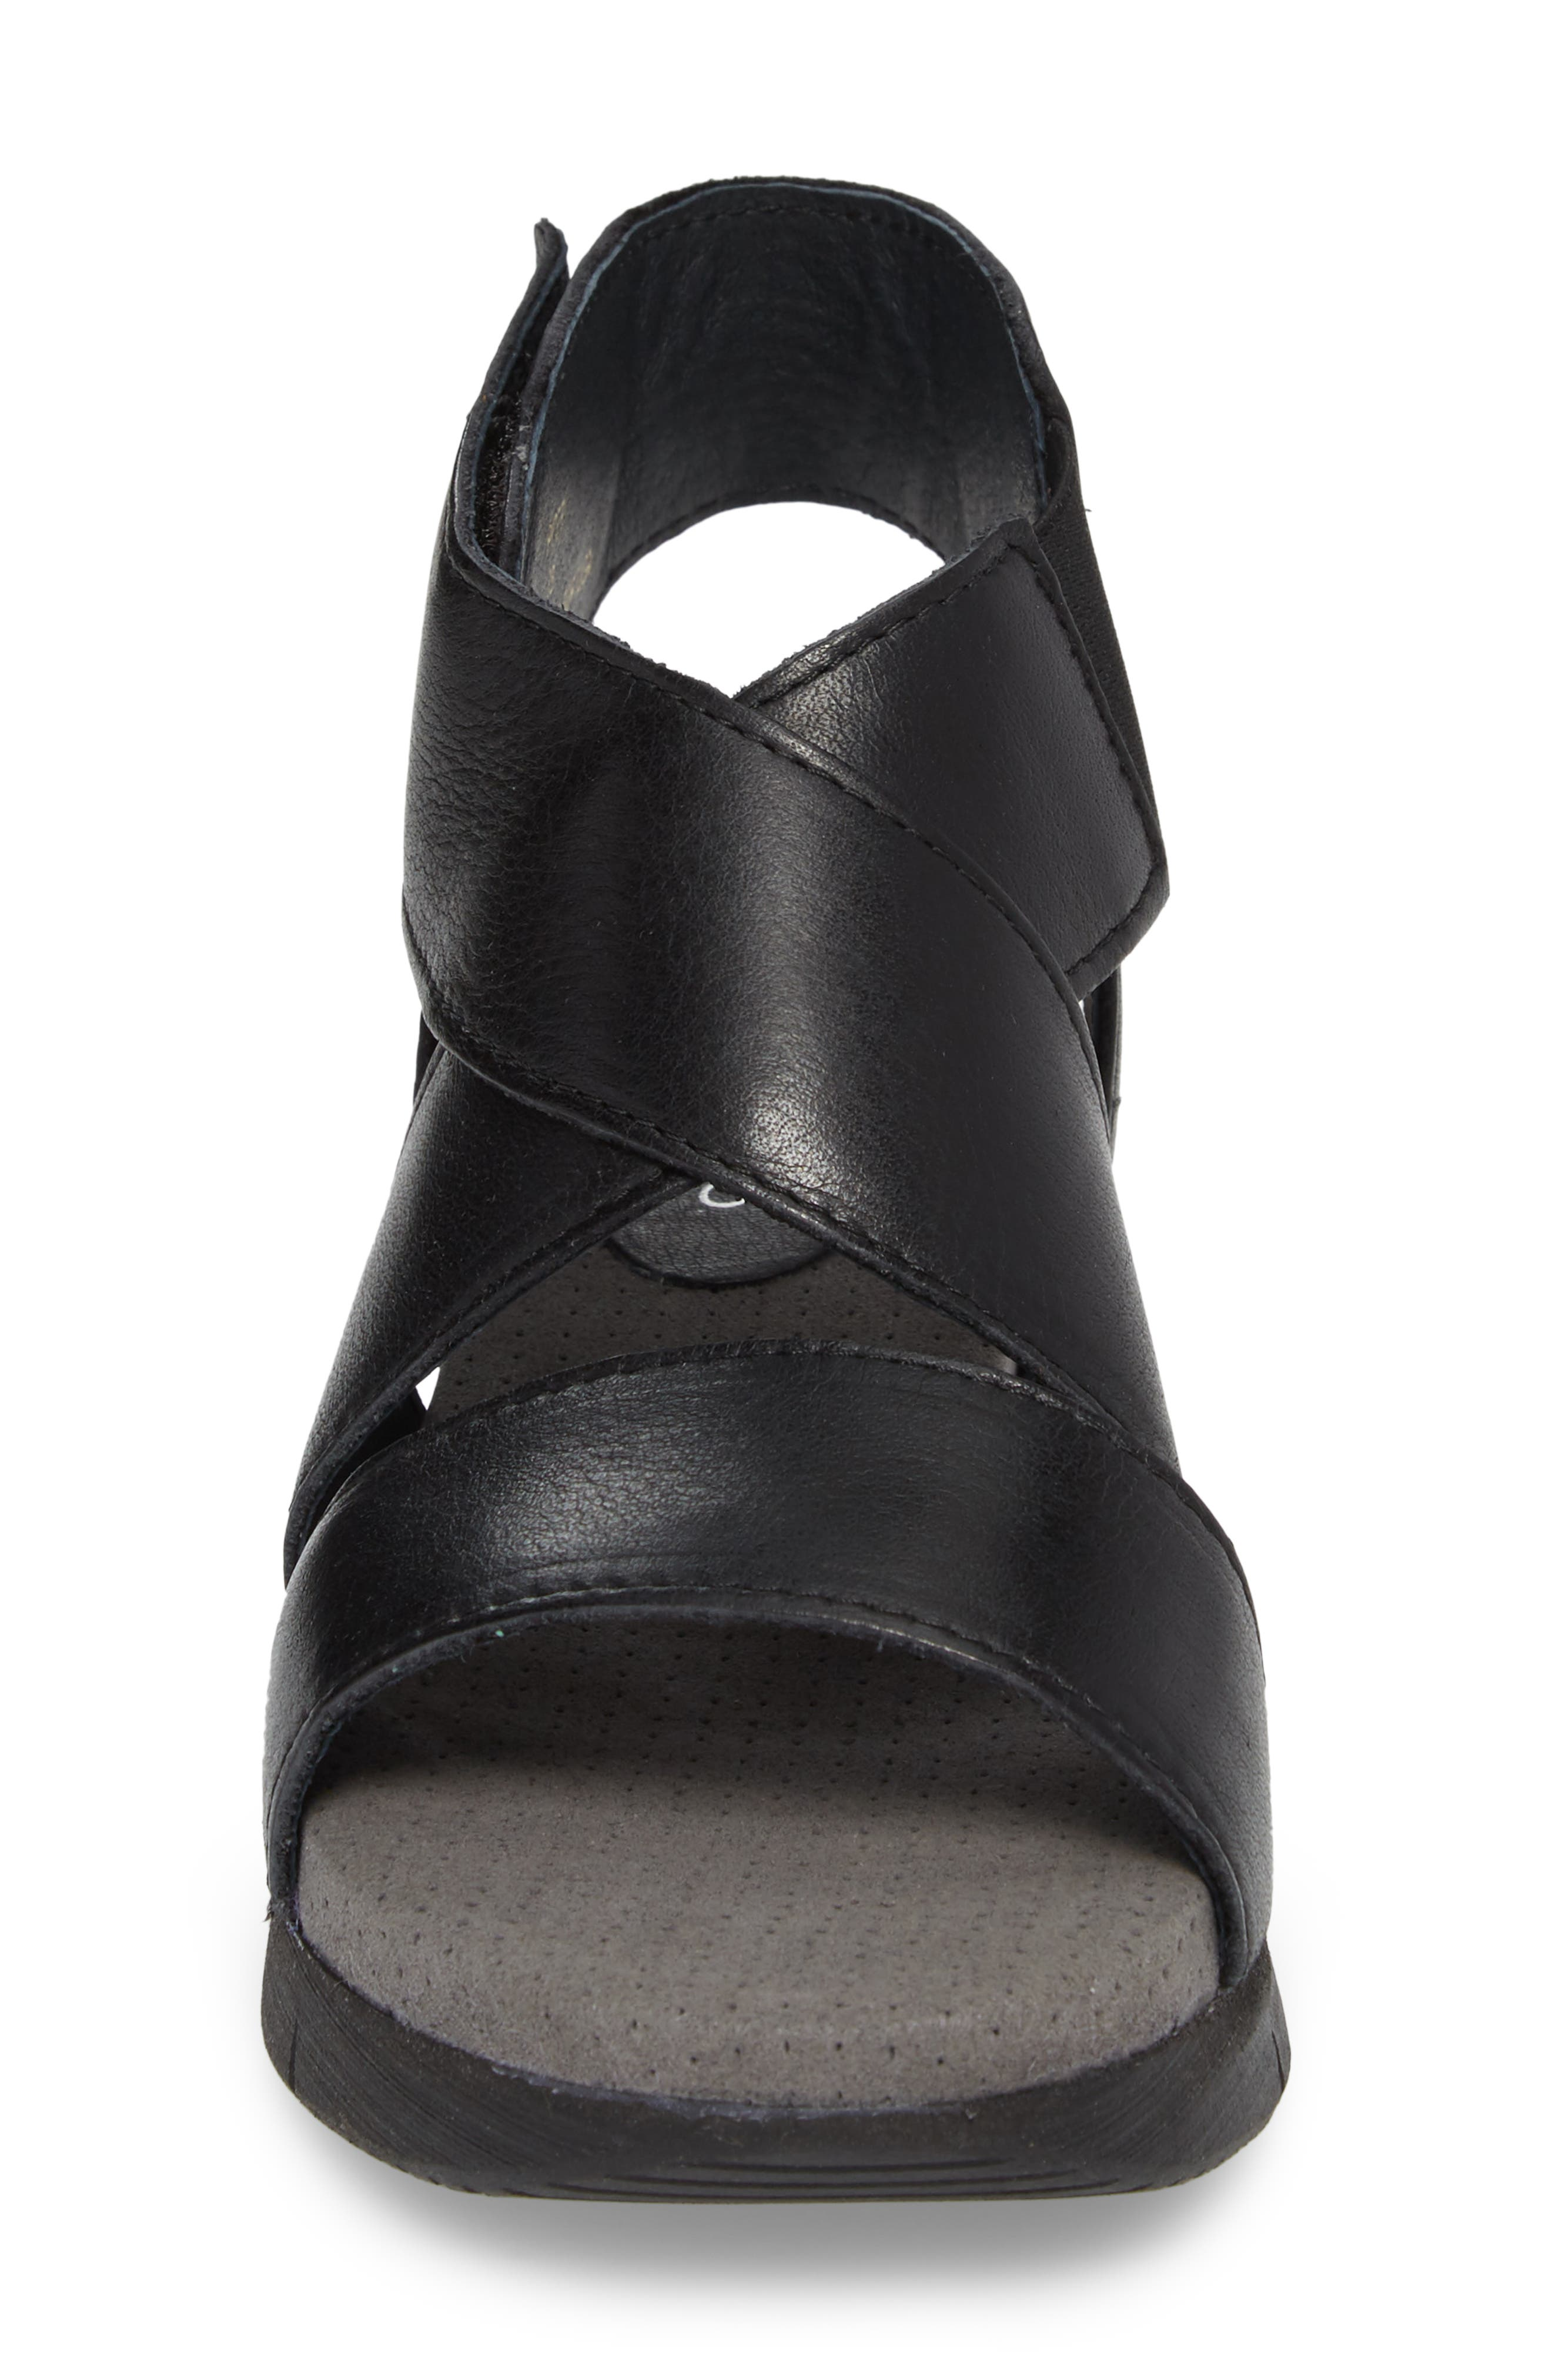 Piper Wedge Sandal,                             Alternate thumbnail 4, color,                             BLACK SAUVAGE LEATHER